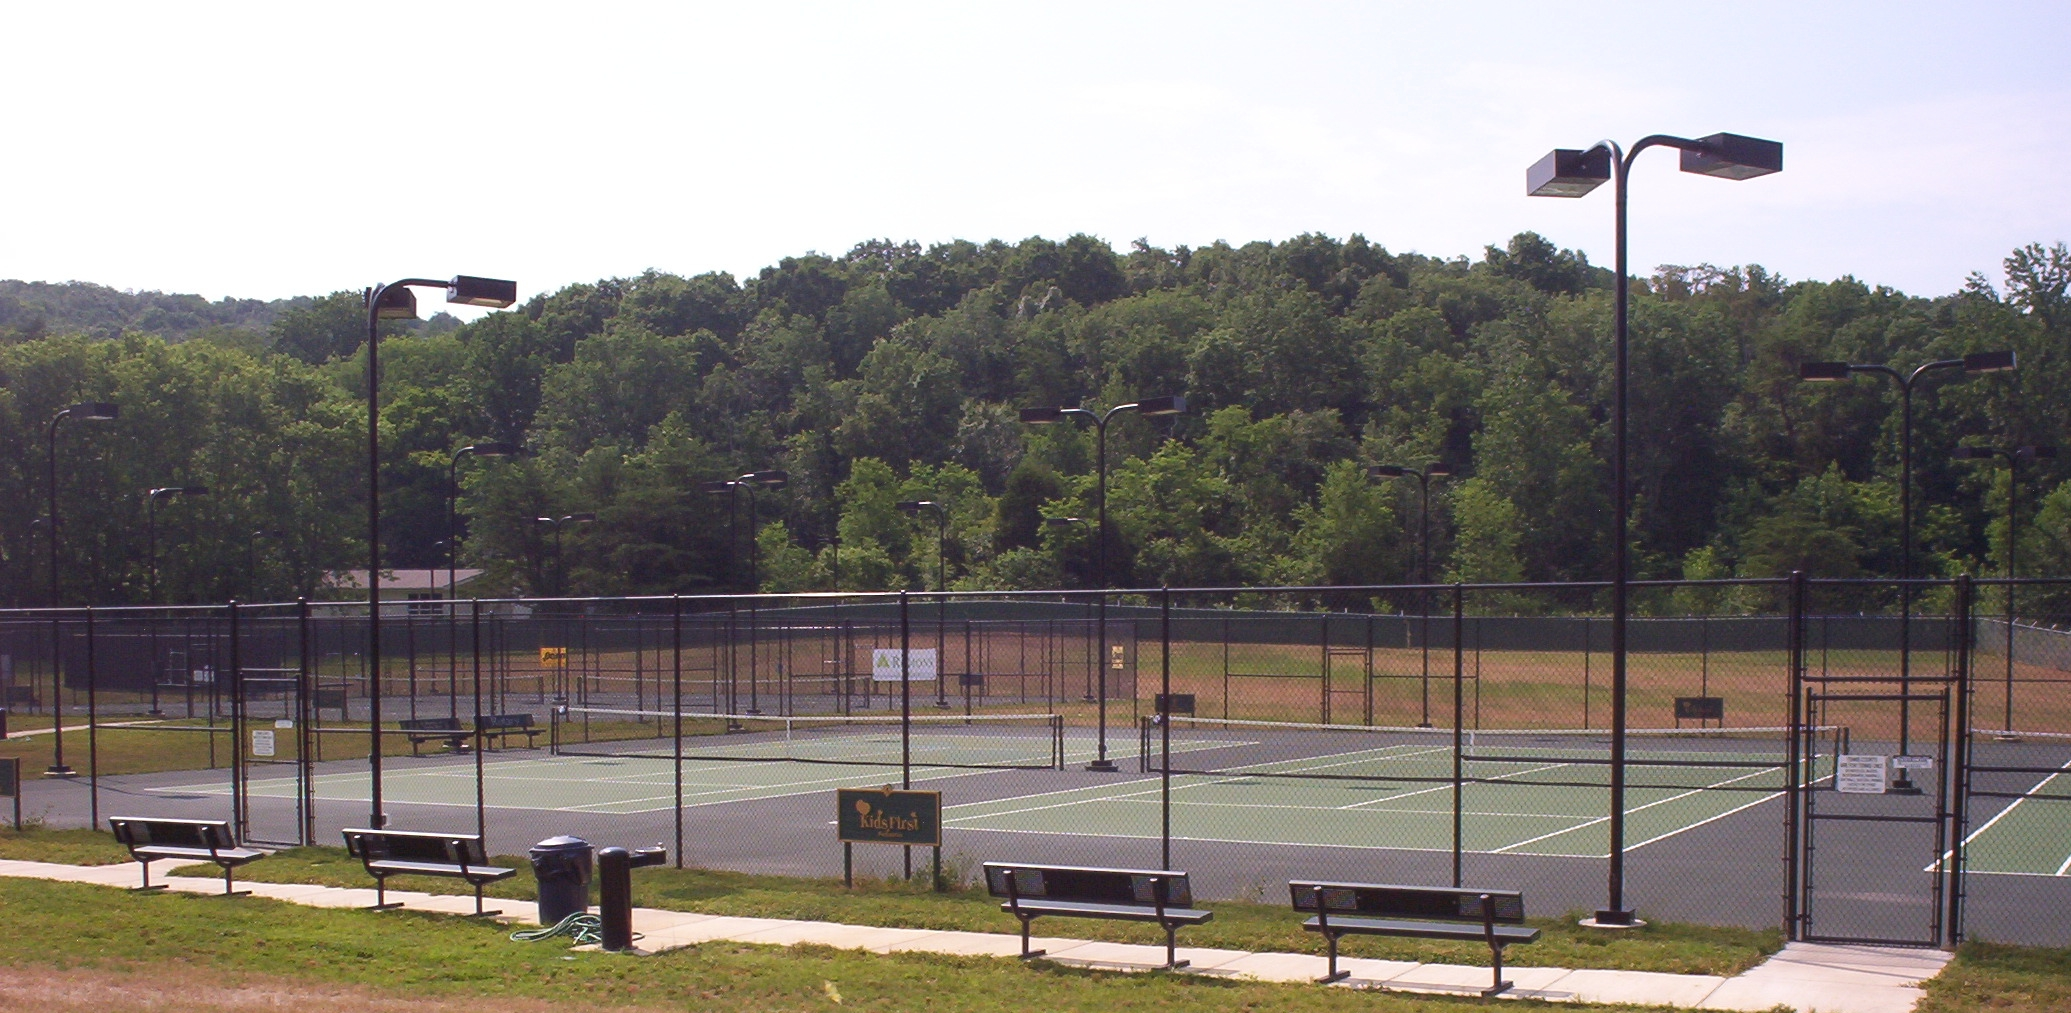 Baseline Sports Construction received an Outstanding Tennis Facility Award from American Sports Builders Association in 2008for the construction of the Greene County Tennis Association Tennis Facility in Greeneville, TN. The project consisted of 6 hard courts and 2 soft courts. -